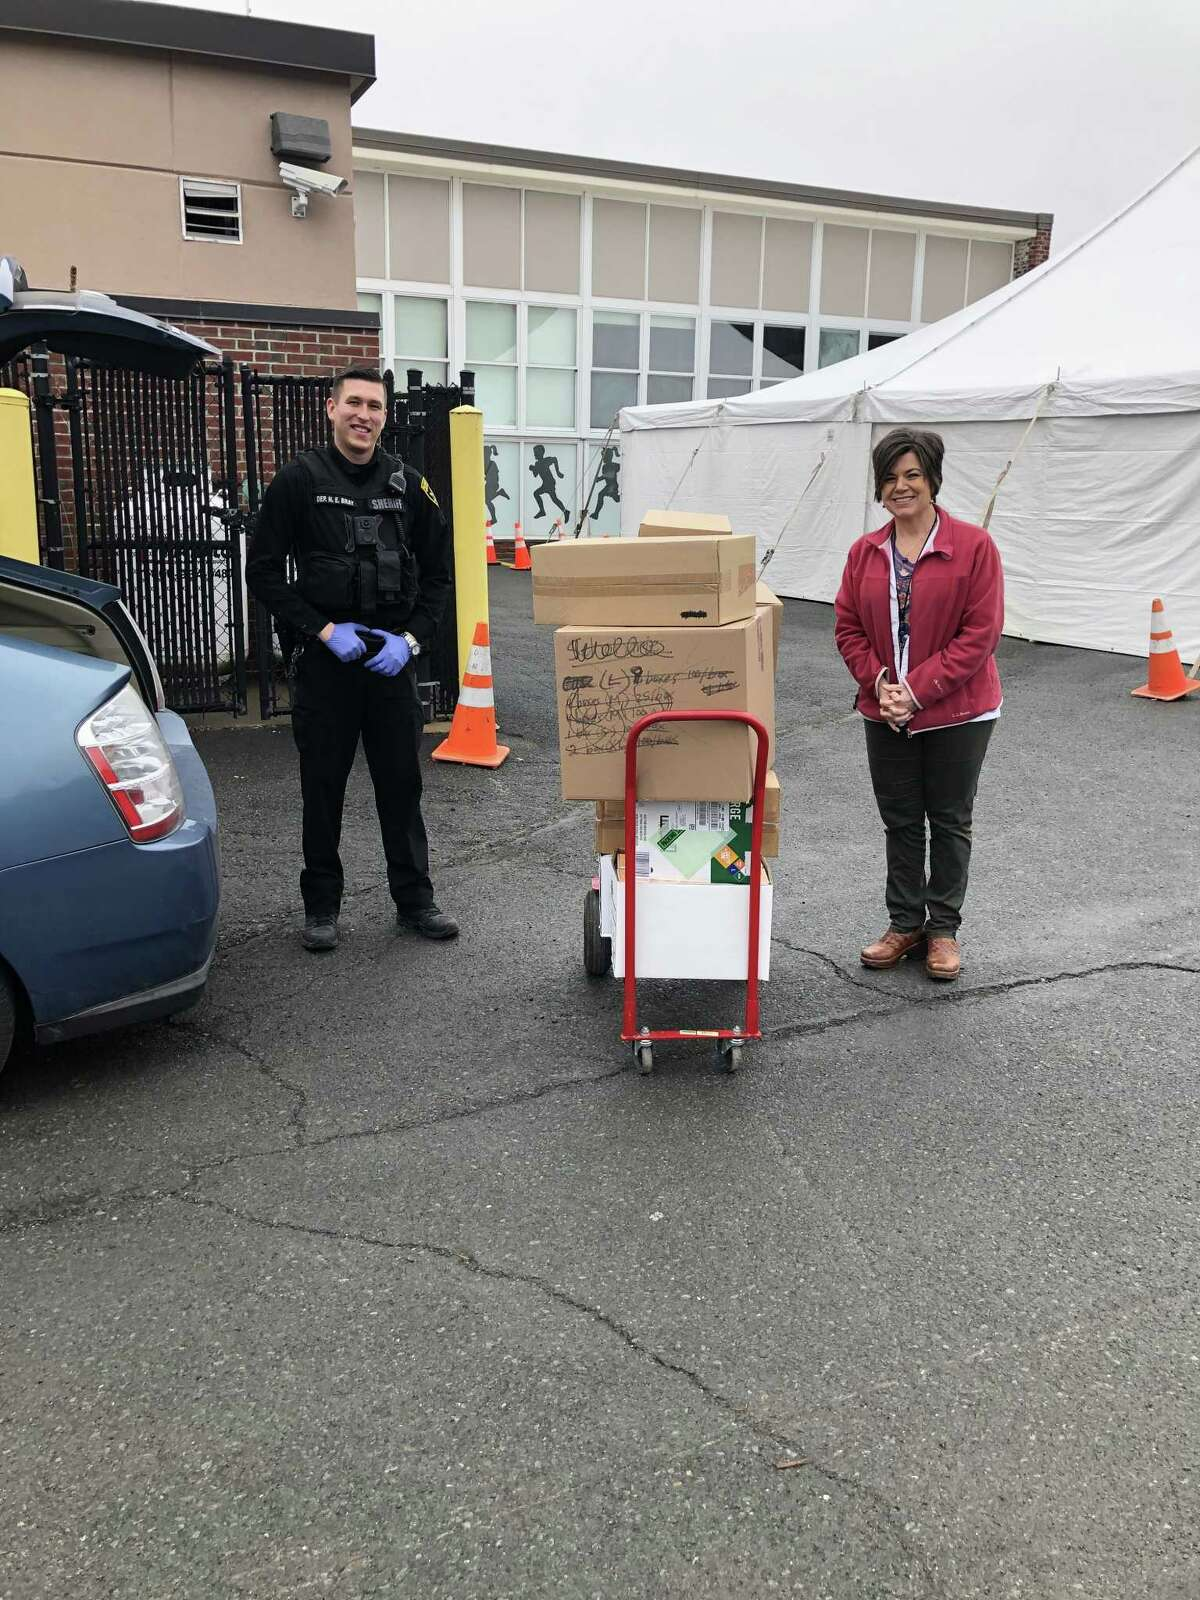 Capital Region BOCES in partnership with numerous Albany area schools provided much-needed supplies to those doing battle with the COVID-19 pandemic. (Photo provided)